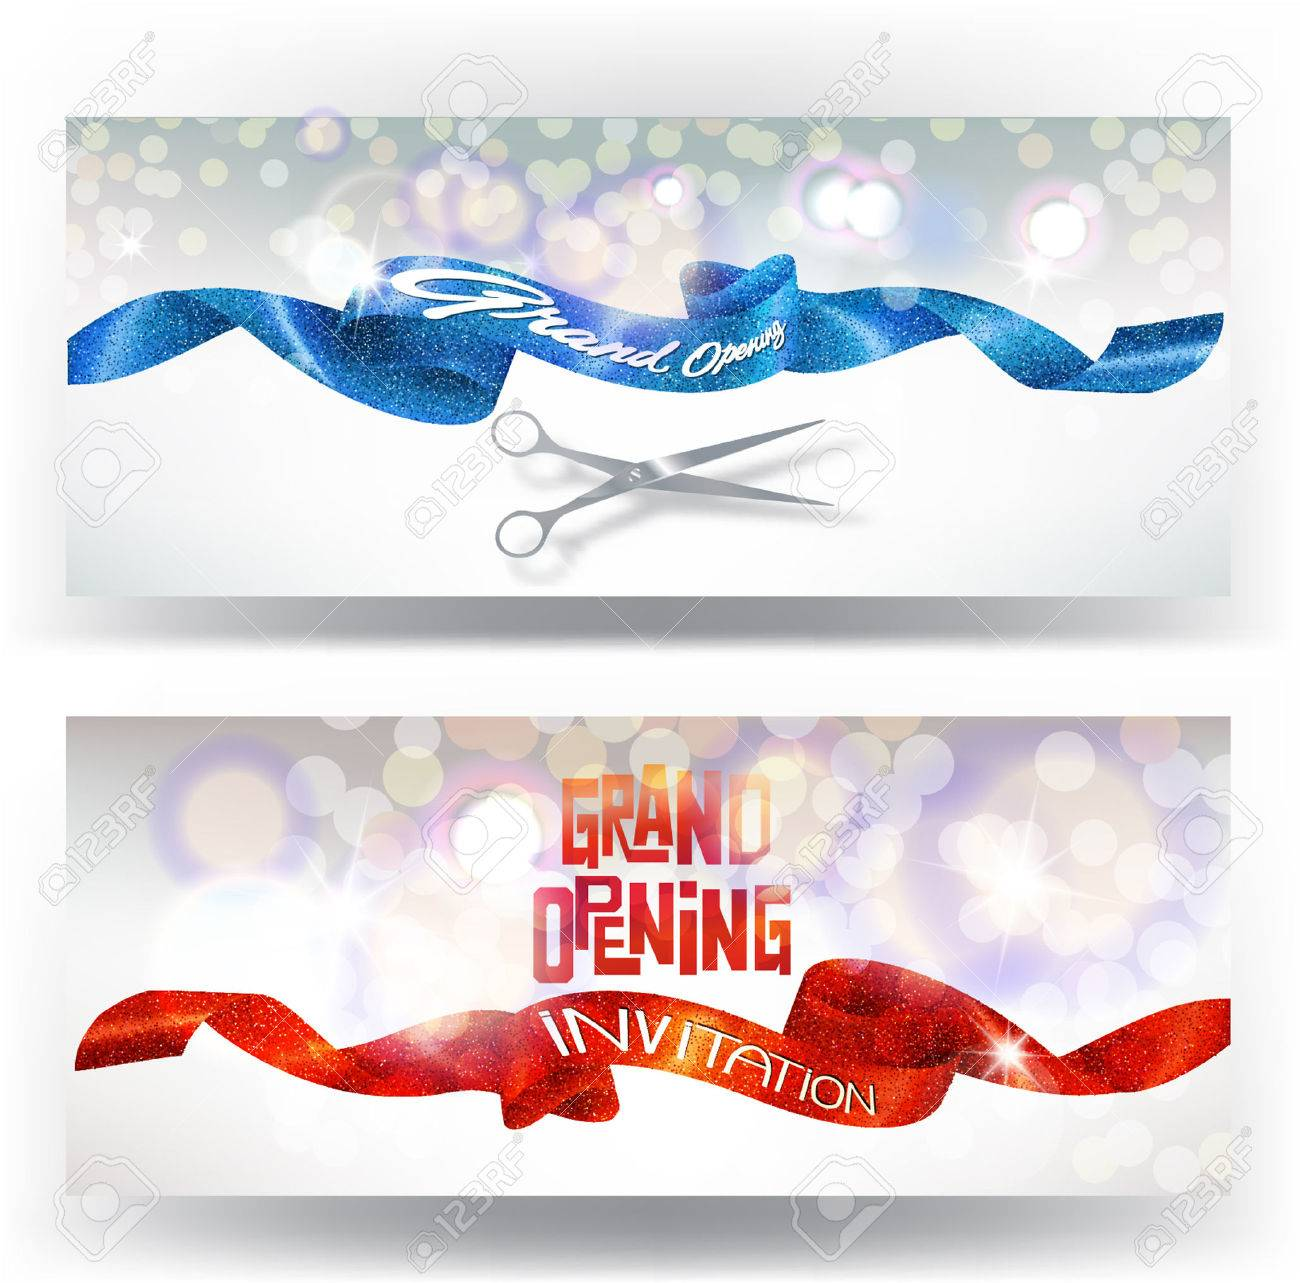 Grand opening cards with red and blue sparkling ribbons and scissors. illustration - 63173853